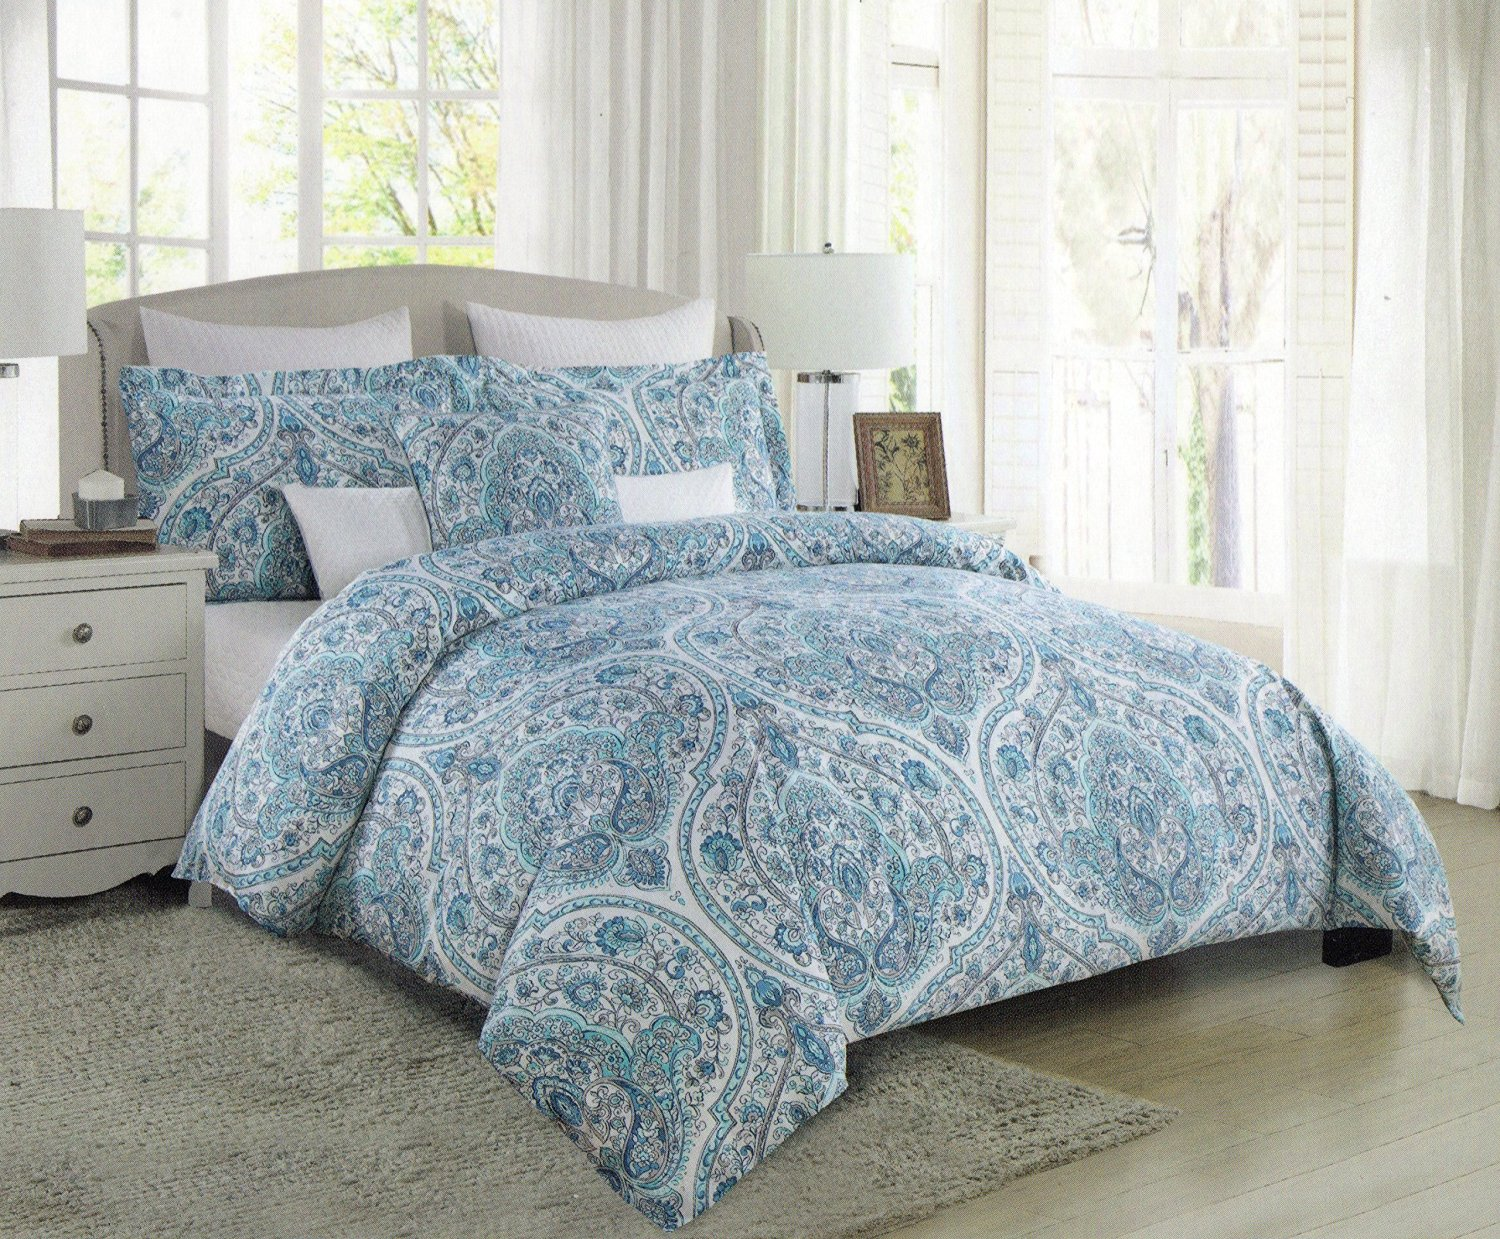 Tahari Home Teal Turquoise Grey Antique Paisley Baroque Medallions 3pc King Duvet Cover Set Moroccan Tile Aqua Gray Blue Bothe Style Bohemian 300TC (King)